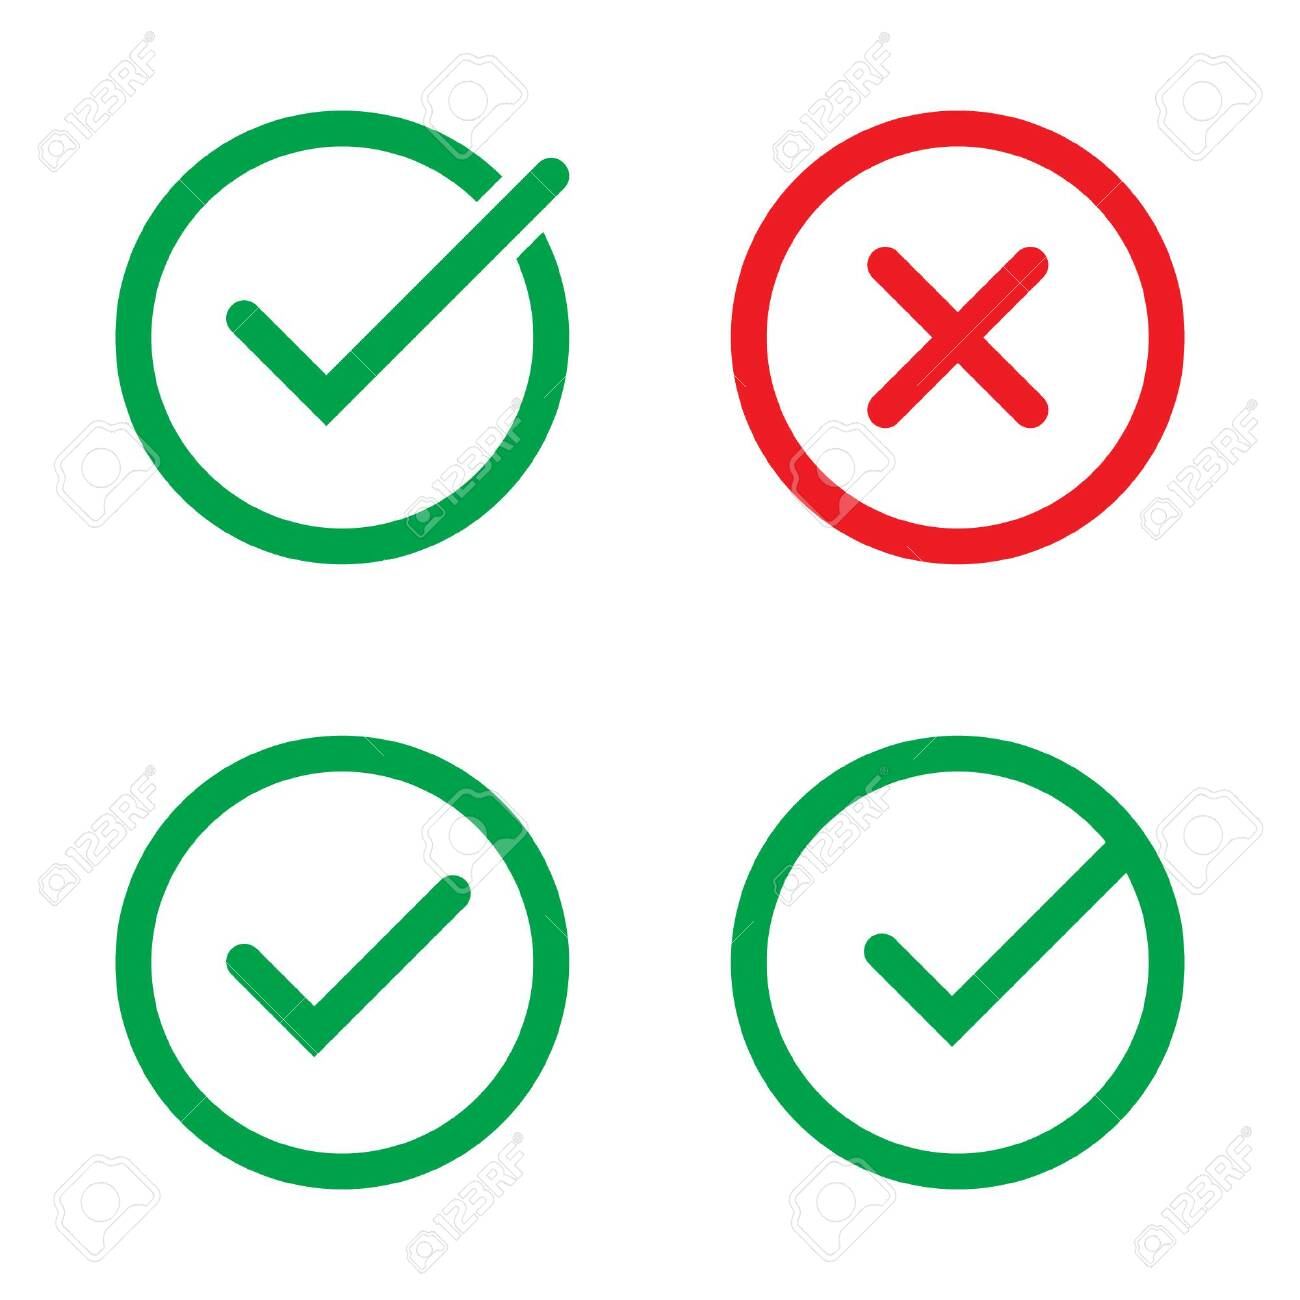 Tick and cross signs. Green checkmark and red X icons, isolated on white background. - 142257669